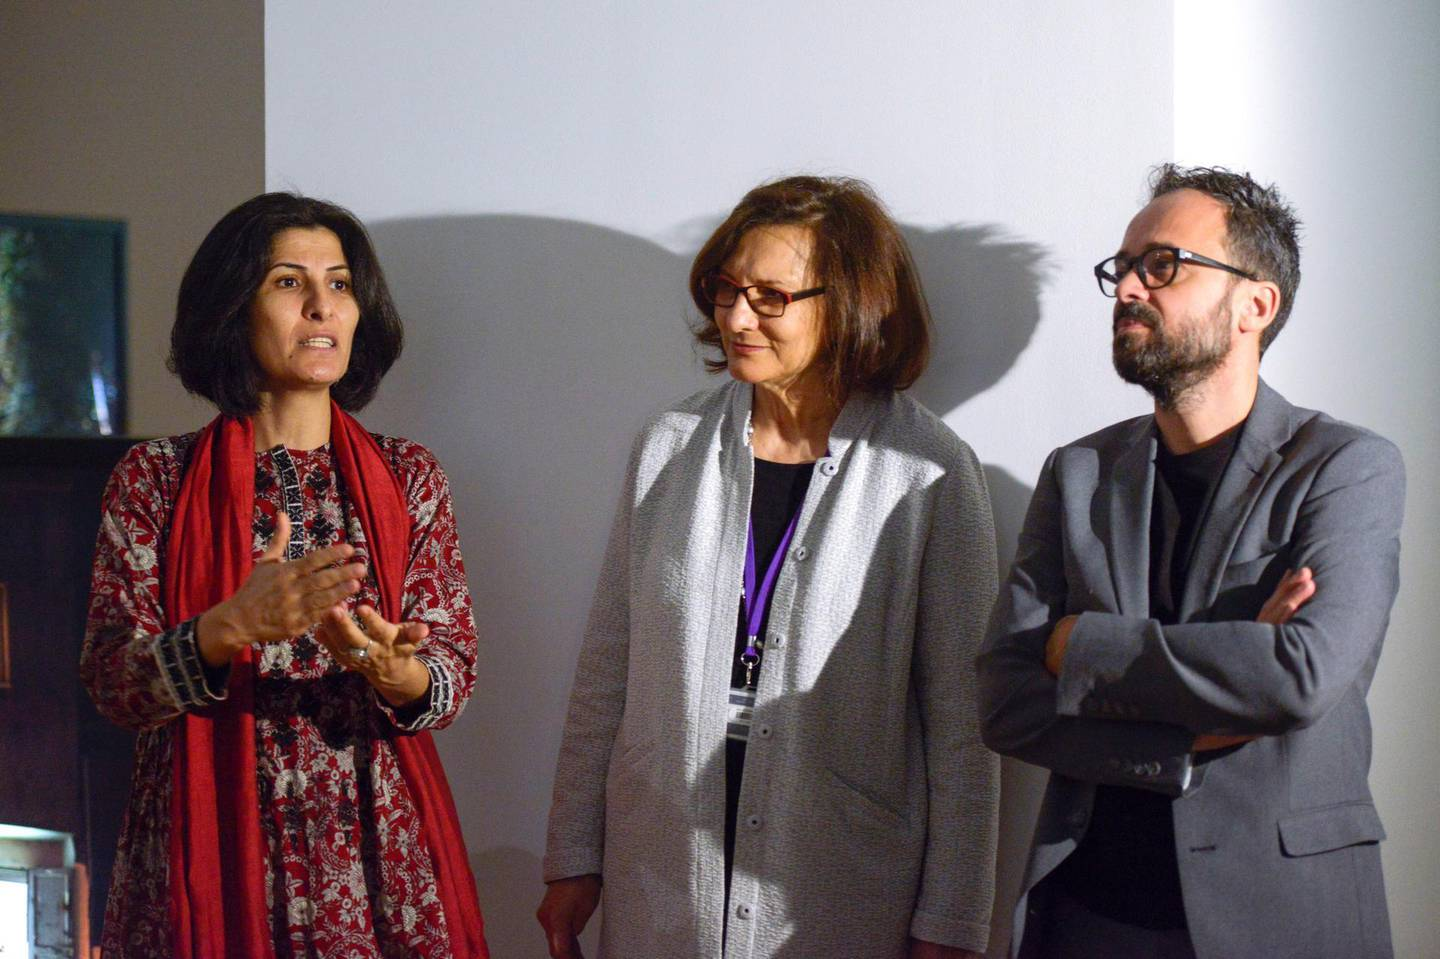 Abu Dhabi, United Arab Emirates - Sandi Hilal and Alessandro Petti art practice is a collaborative showcase of conceptual and artistic discourse ÔrefugeenessÕ as a state of being at the Art Gallery in New York University, Saadiyat on February 22, 2018. (Khushnum Bhandari/ The National)